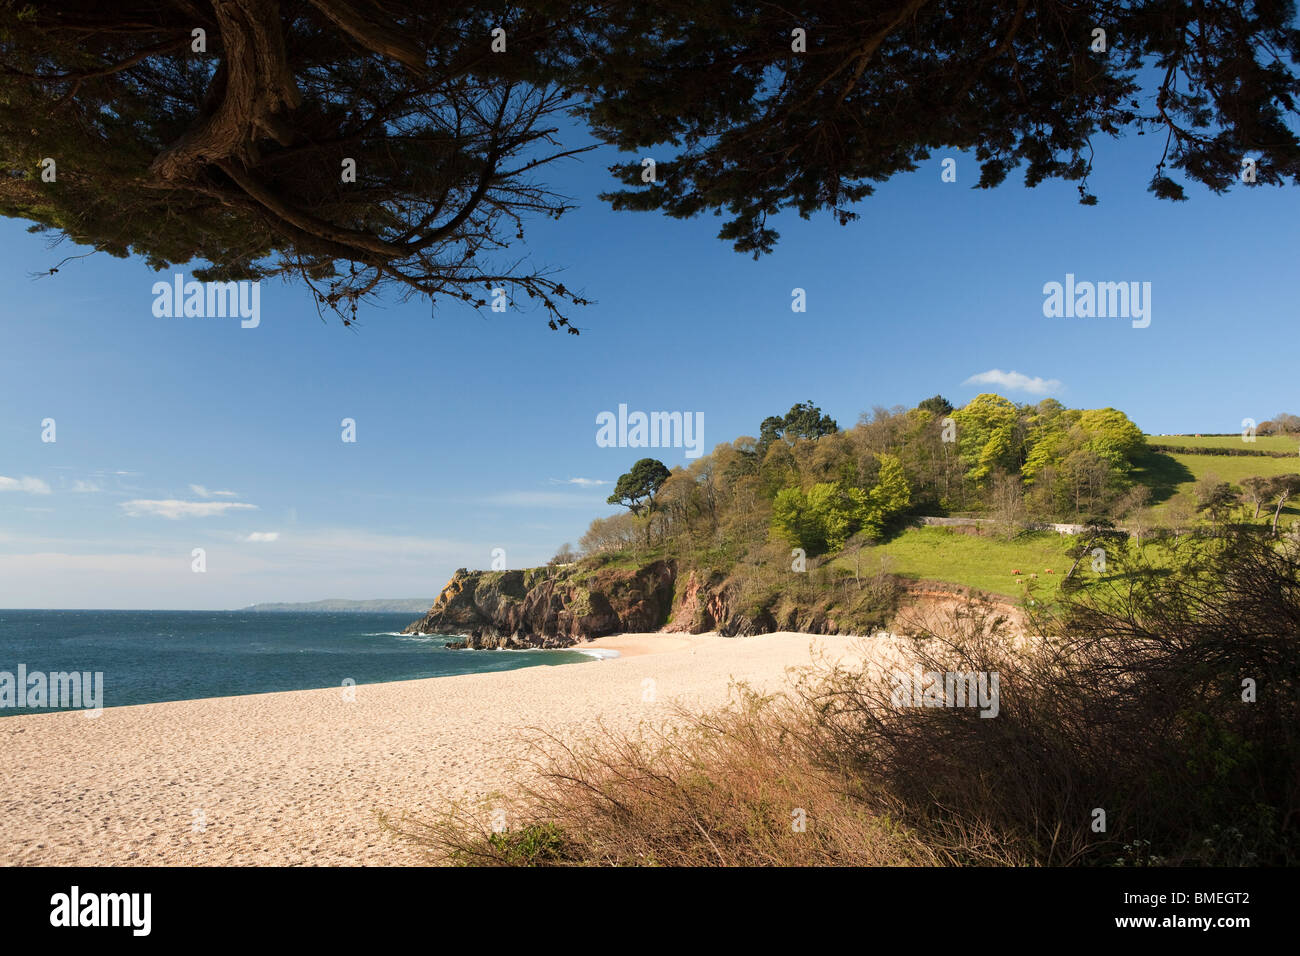 UK, England, Devon, south coast, empty Blackpool sands private beach, on sunny day without people - Stock Image